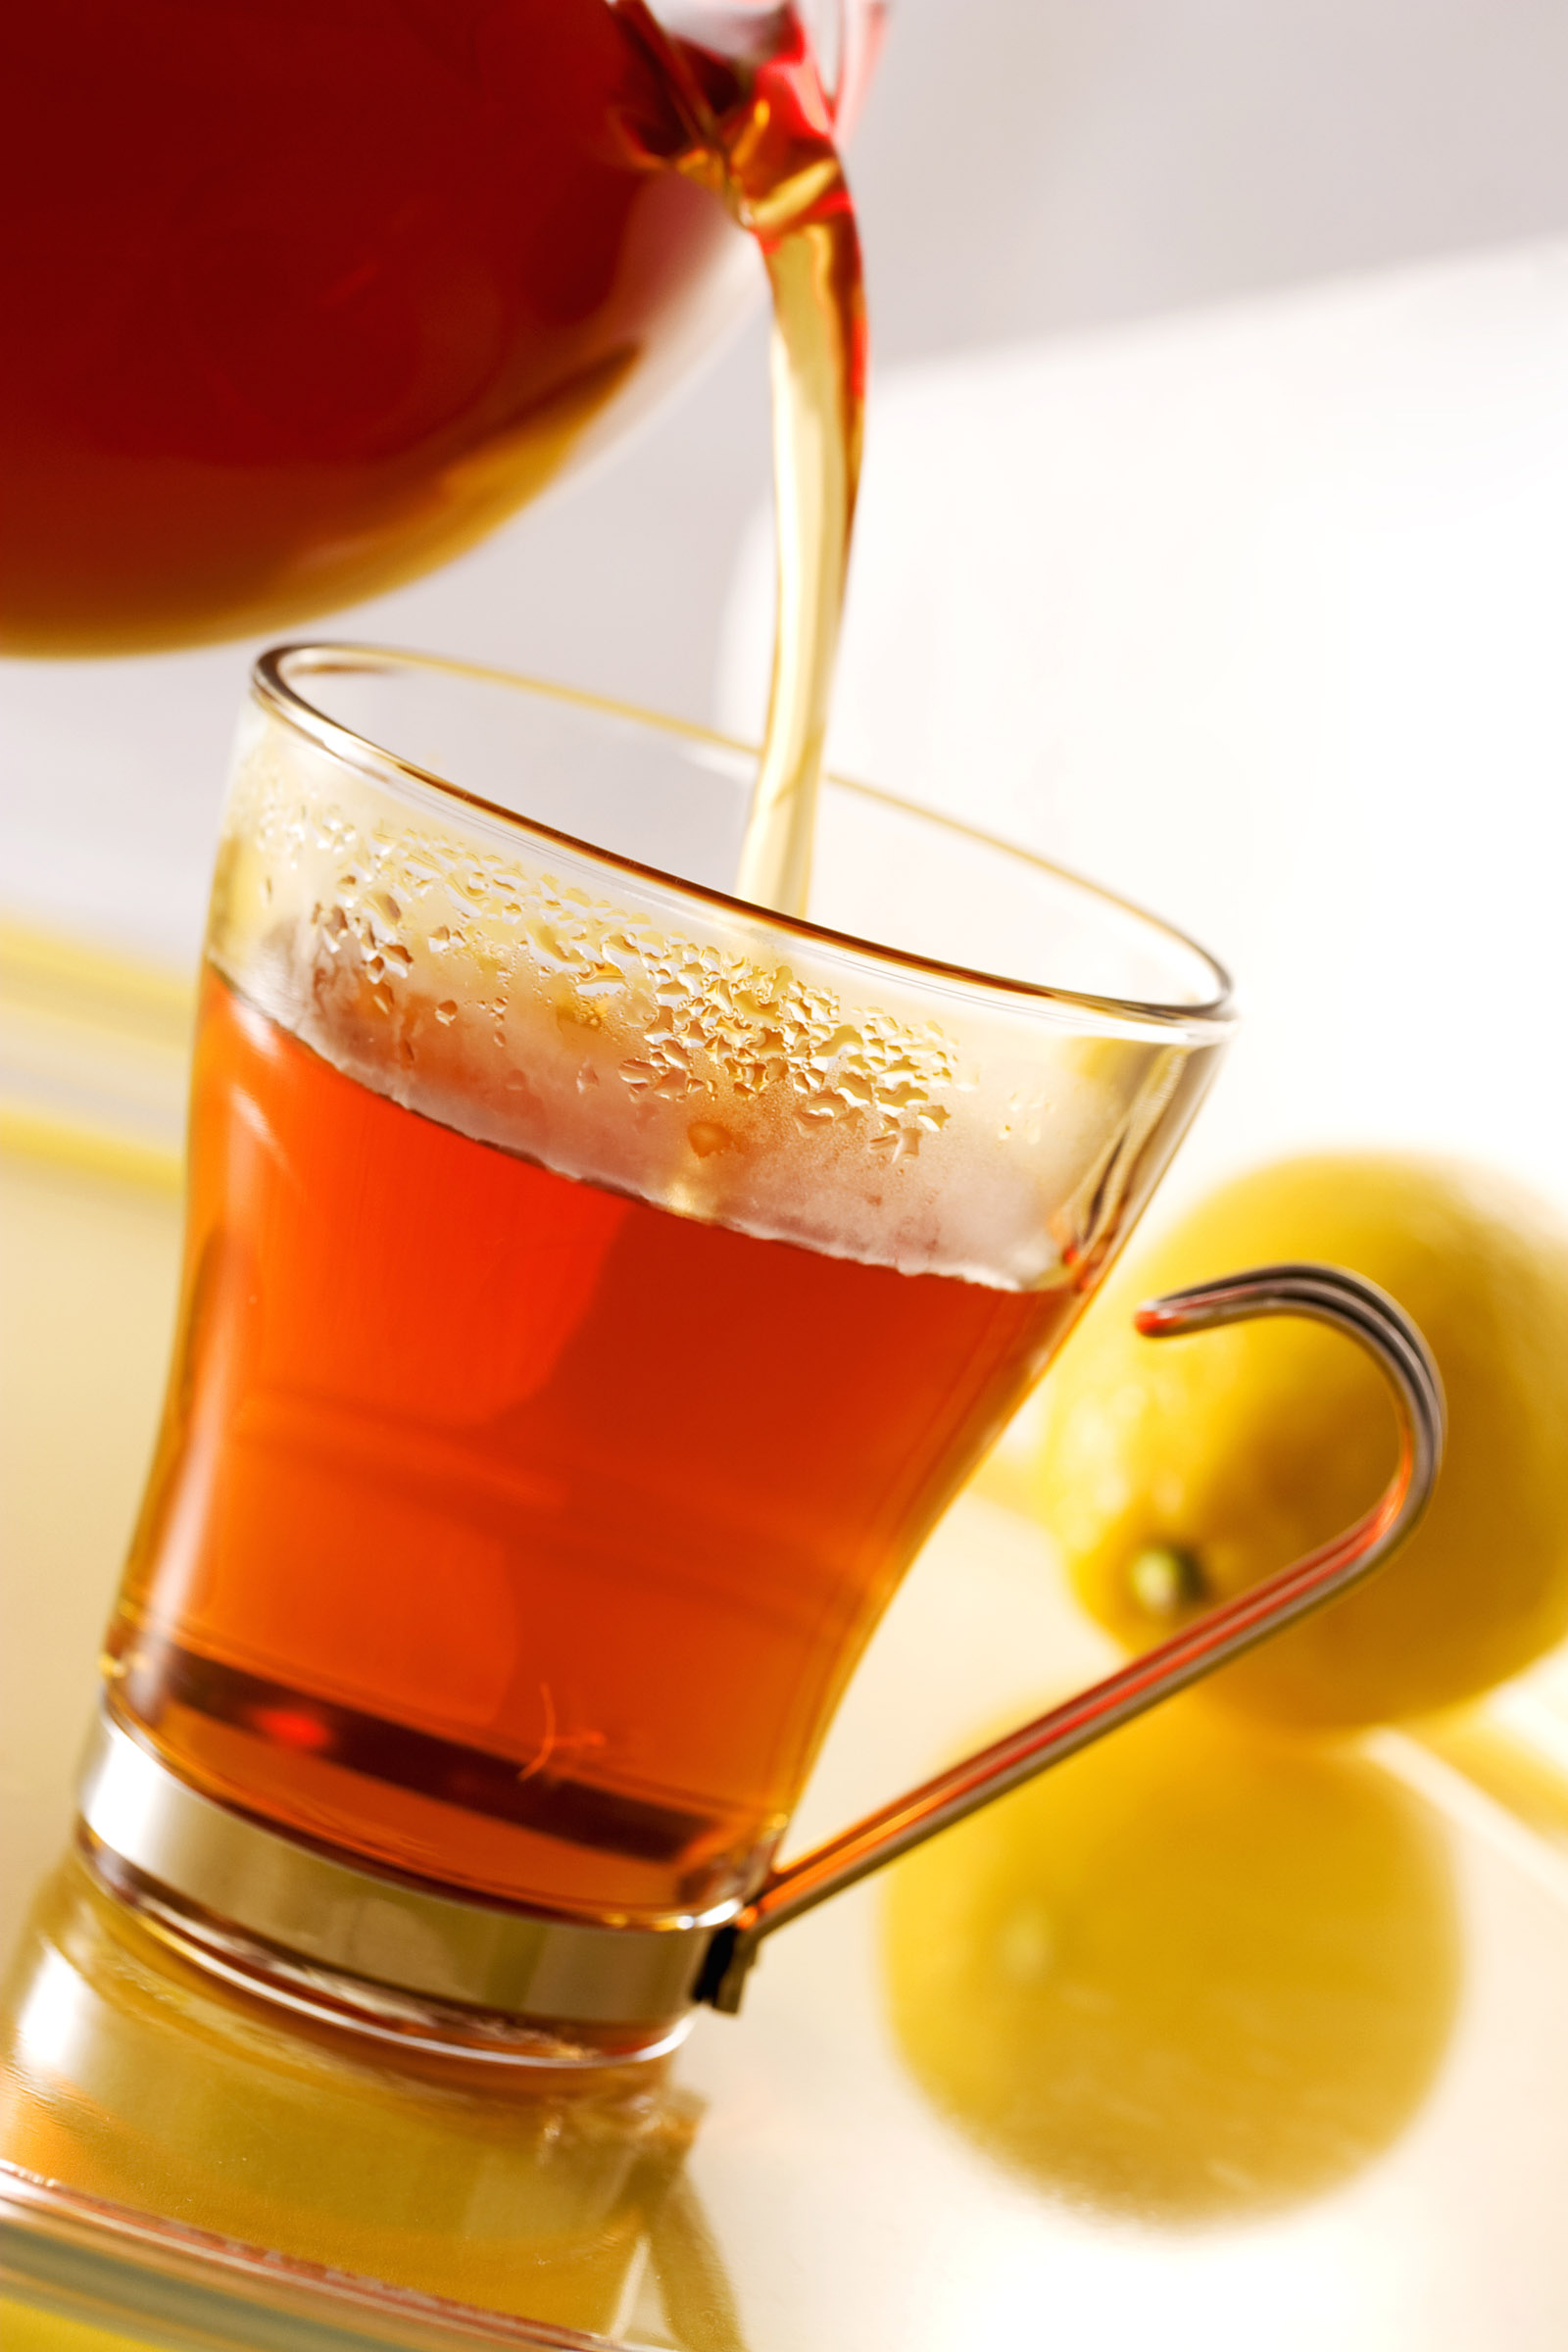 Hd Images Of Black Tea 12503 Tea Drinks Food